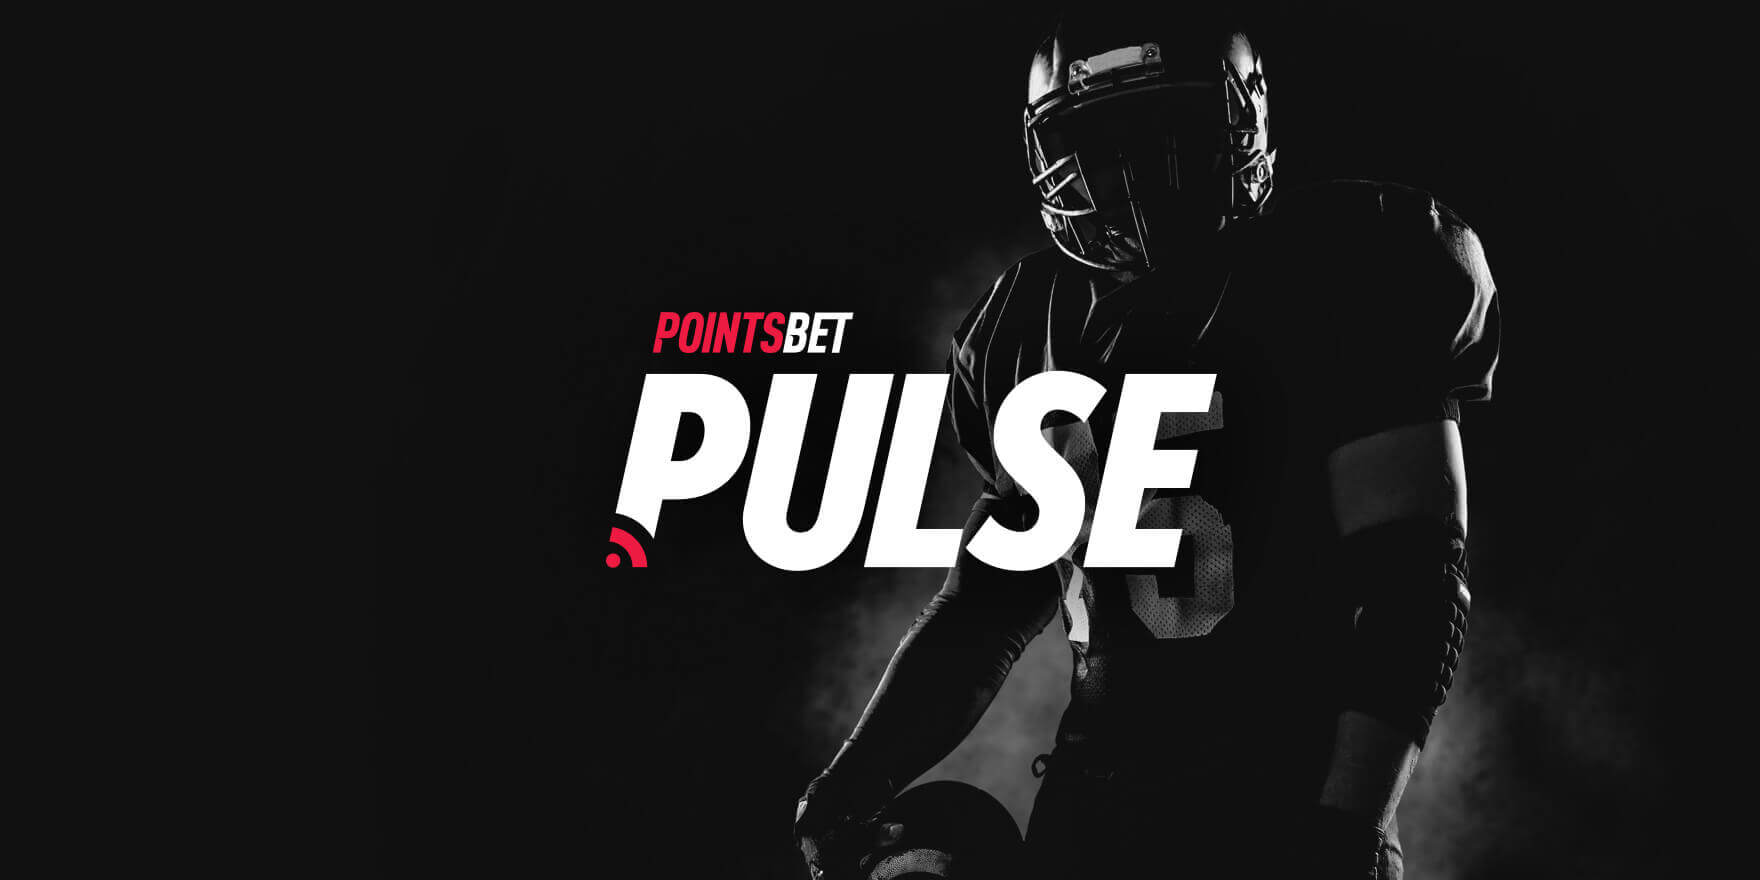 New to PointsBet? Want a refresher? Here's a guide to everything we offer